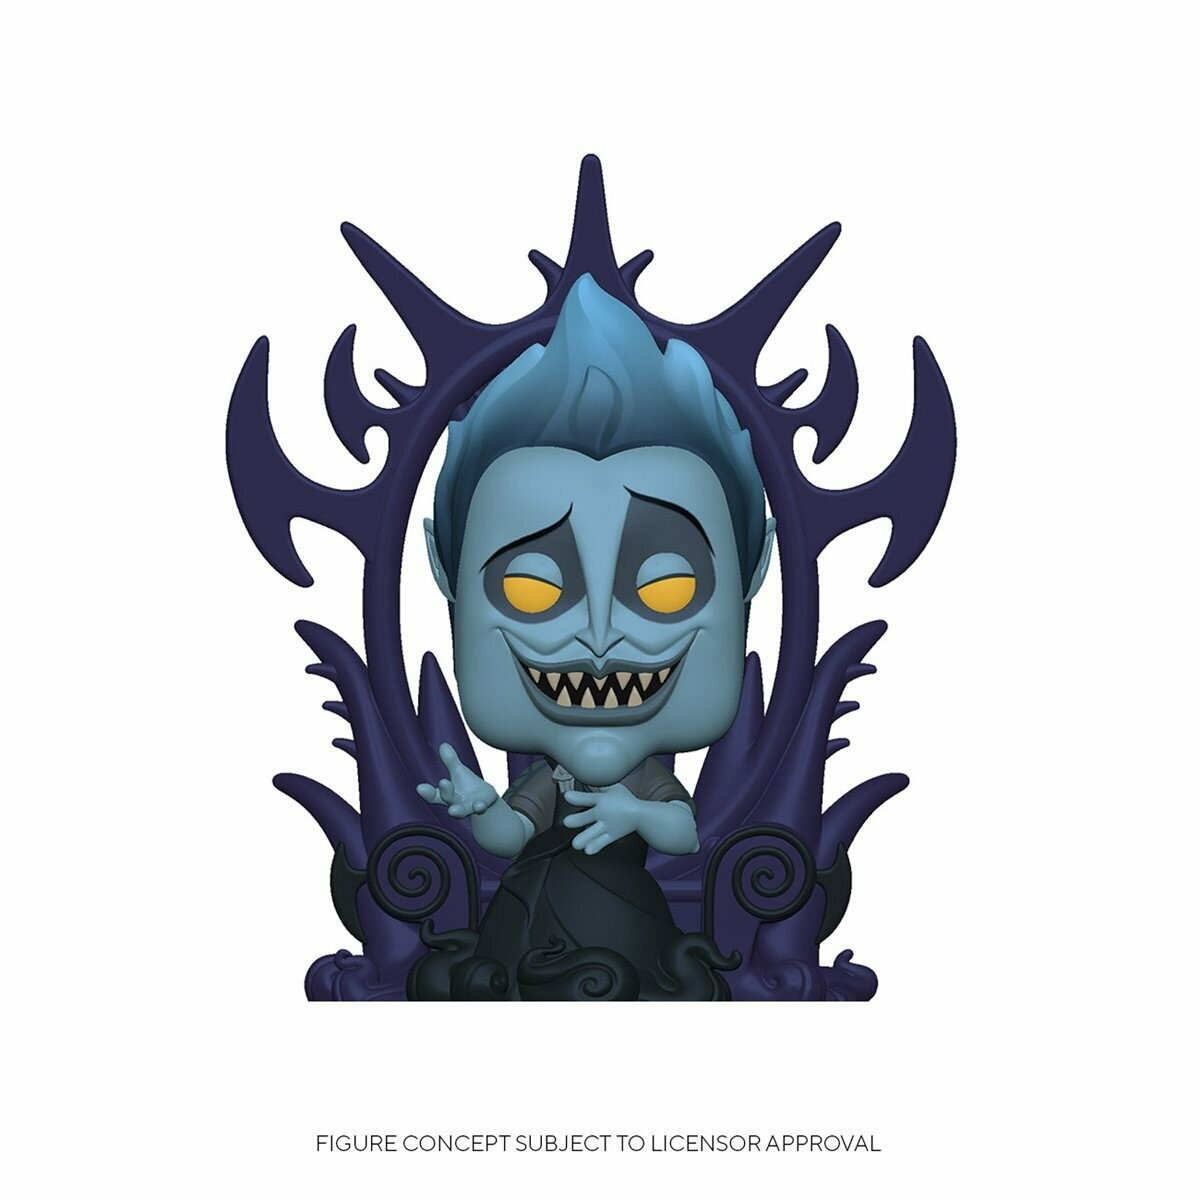 PRE-ORDER Hercules Hades on Throne Deluxe Pop! Vinyl Figure